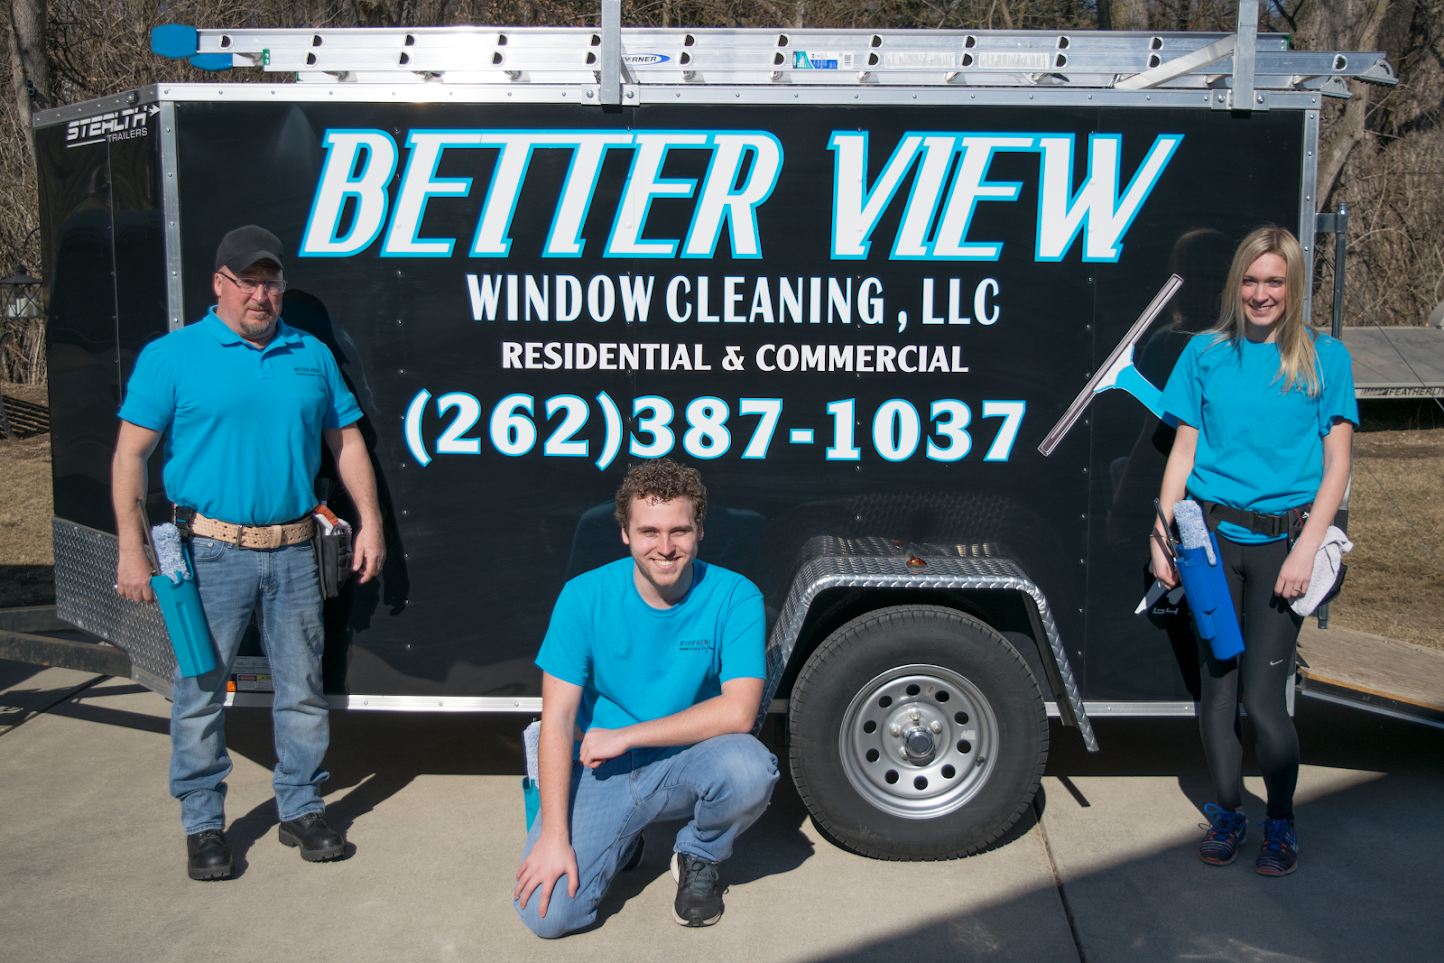 Better View Window Cleaning, LLC. image 1